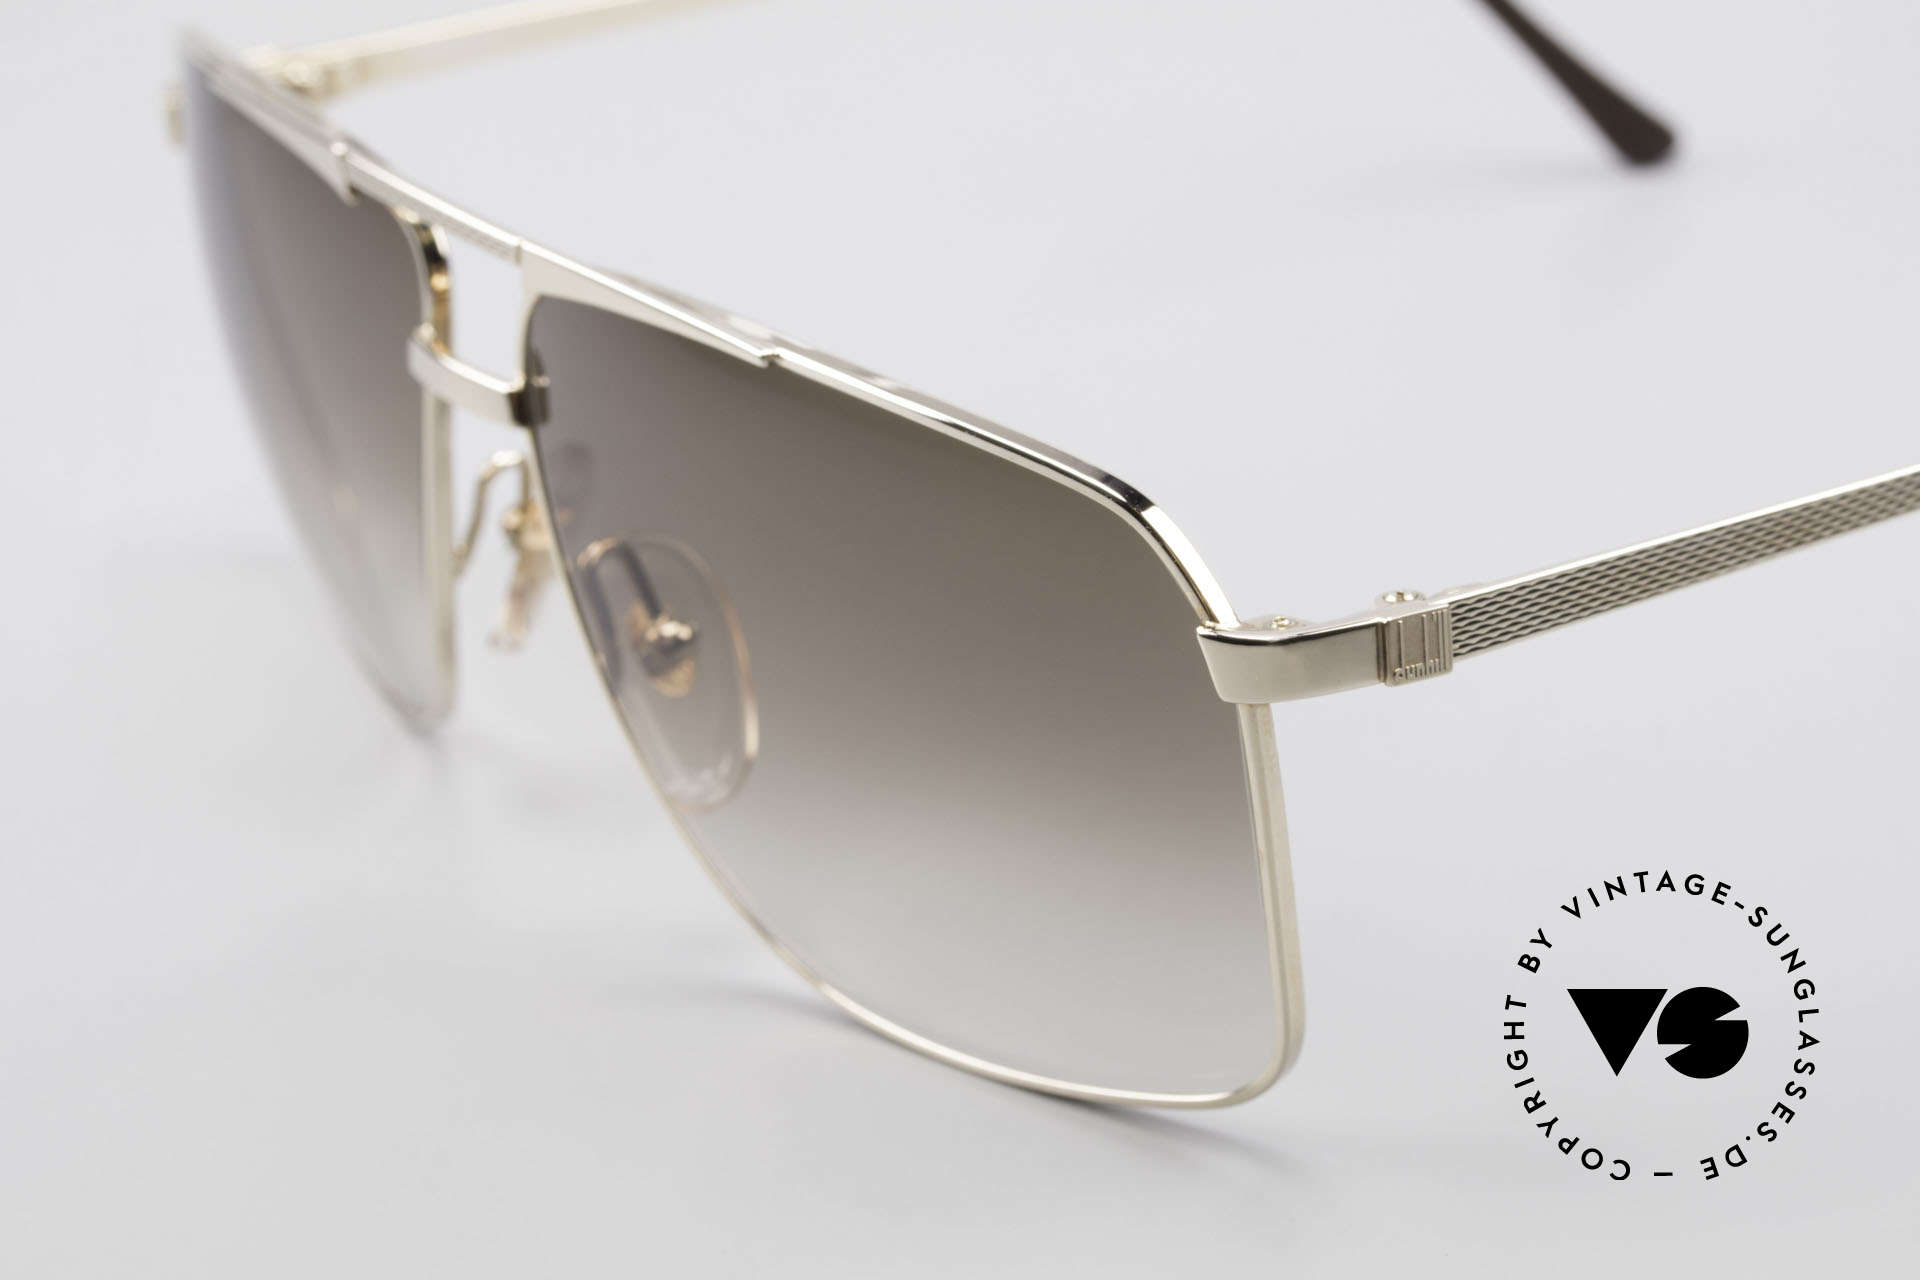 Dunhill 6126 Gold Plated 90's Sunglasses, 'barley': hundreds of minute facets to give a soft sheen, Made for Men